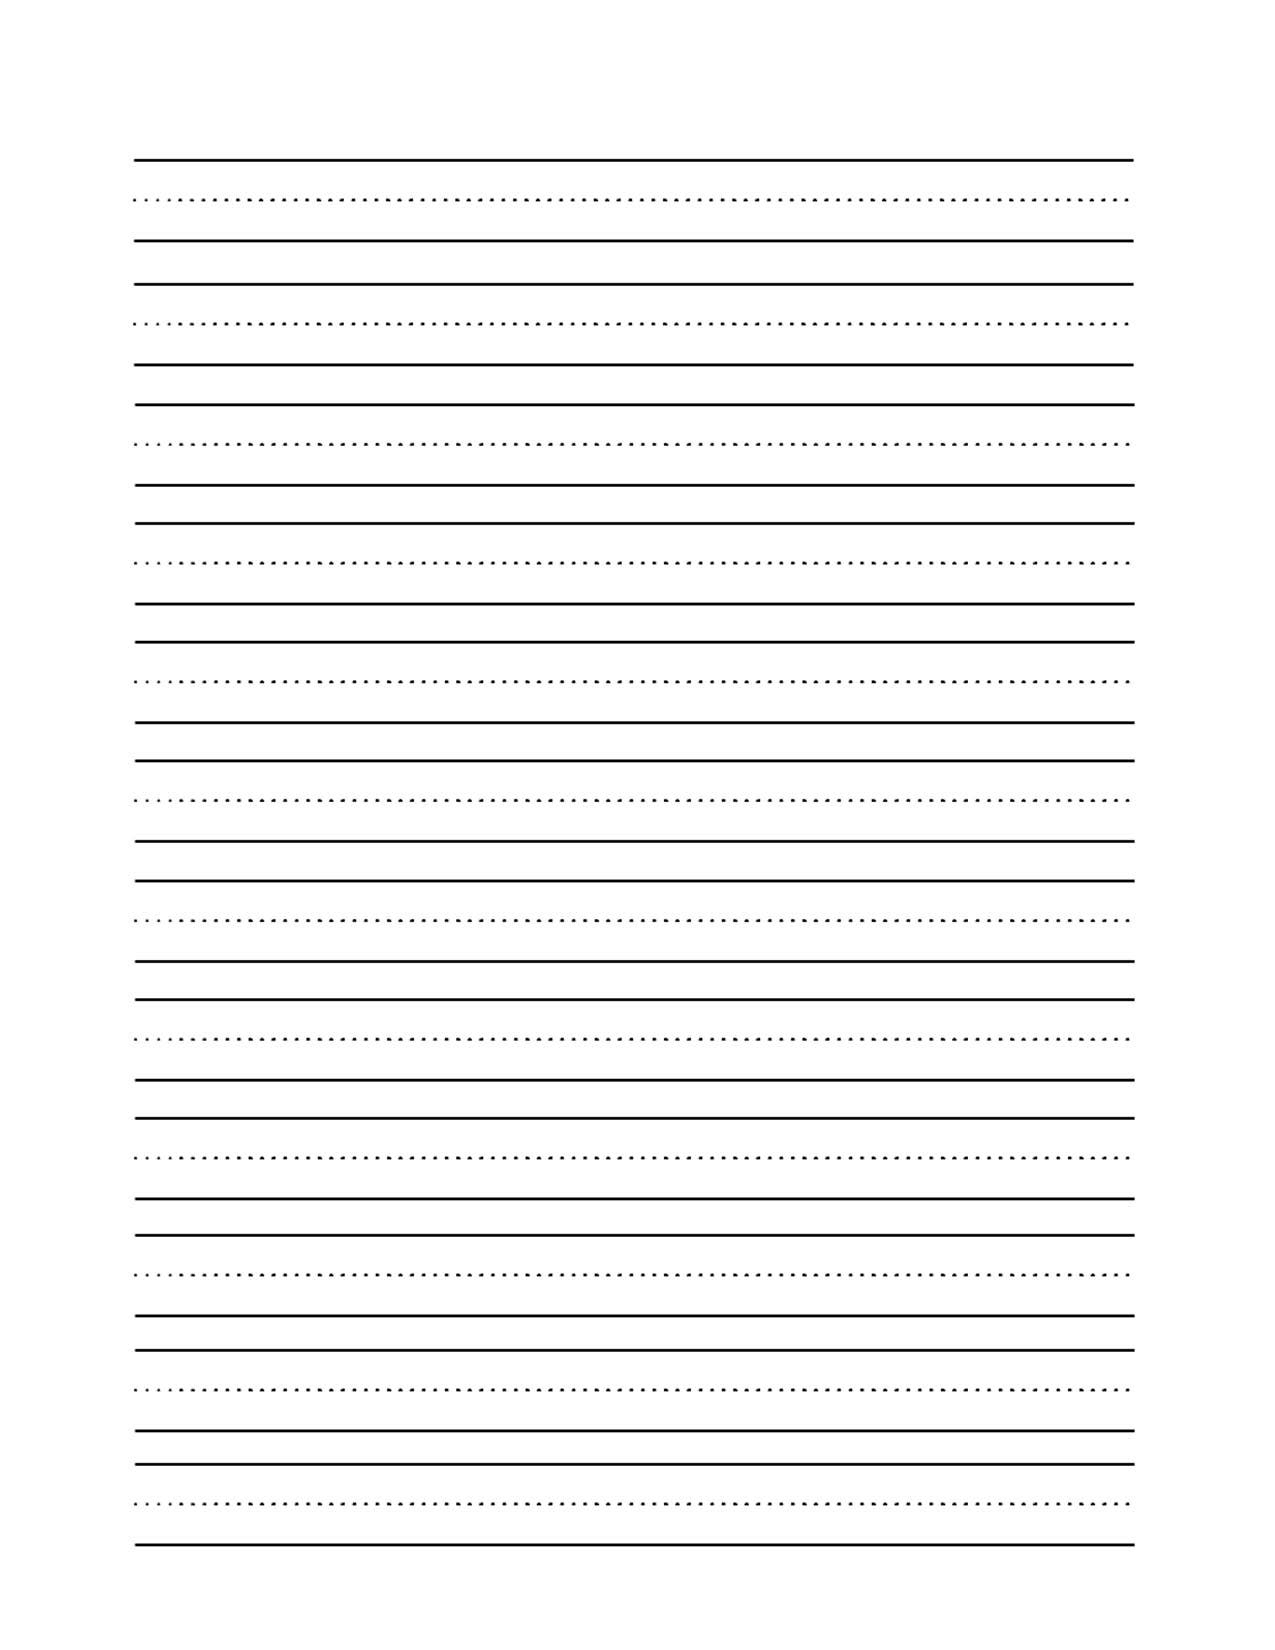 Writing Sheets Term Paper Example - March 2019 - 1454 Words - Free Printable Writing Sheets